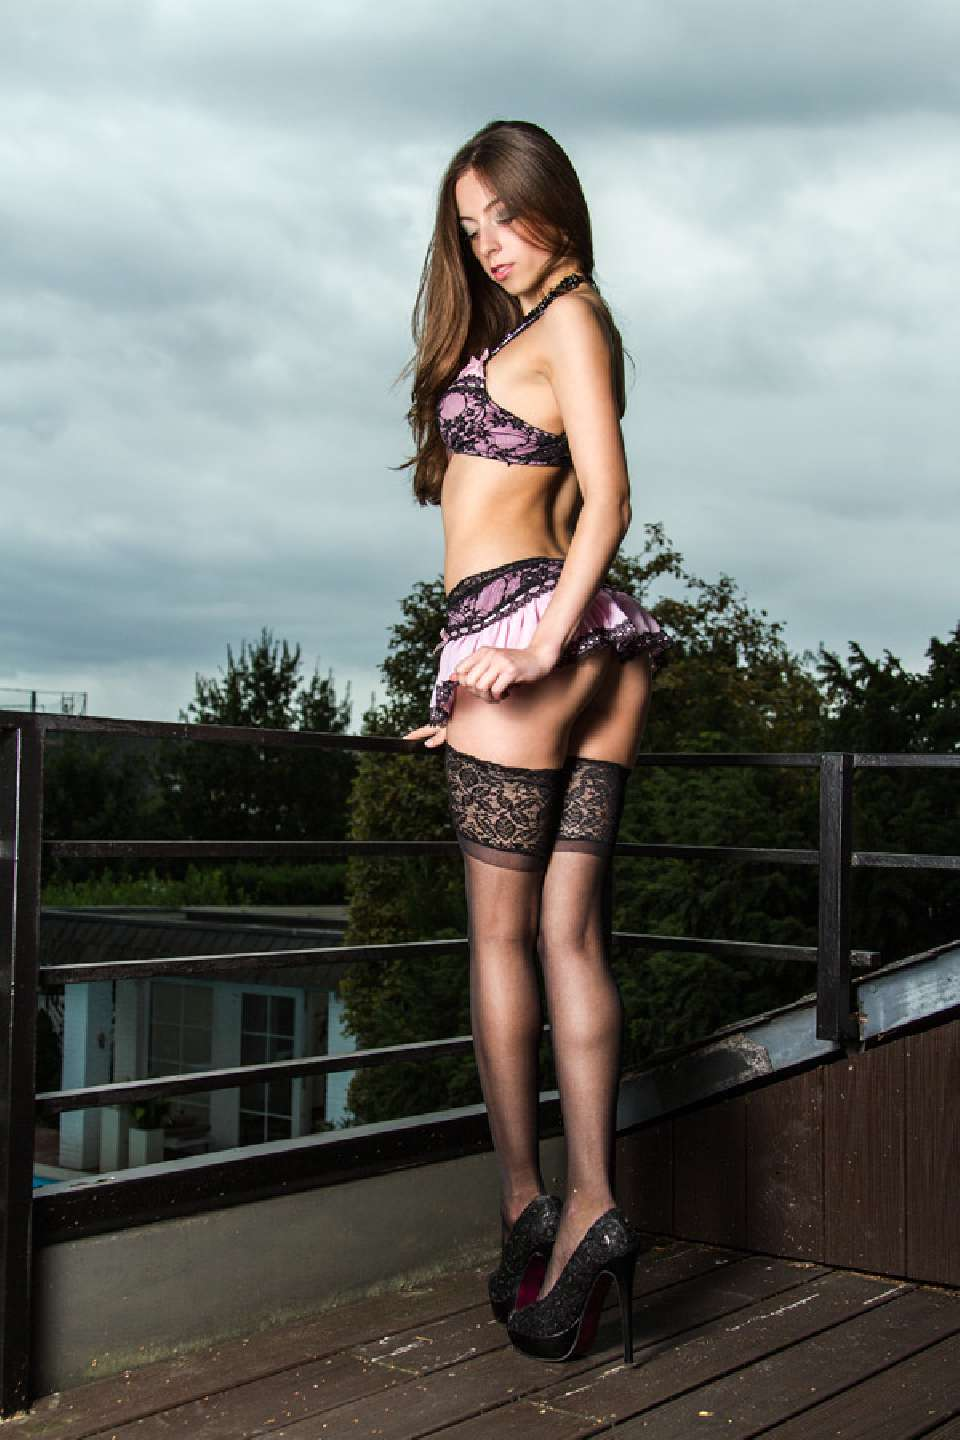 Model Simi Bodyliciouz Calendar 2015 Picture in Lingerie shot by Sven Rodriguez